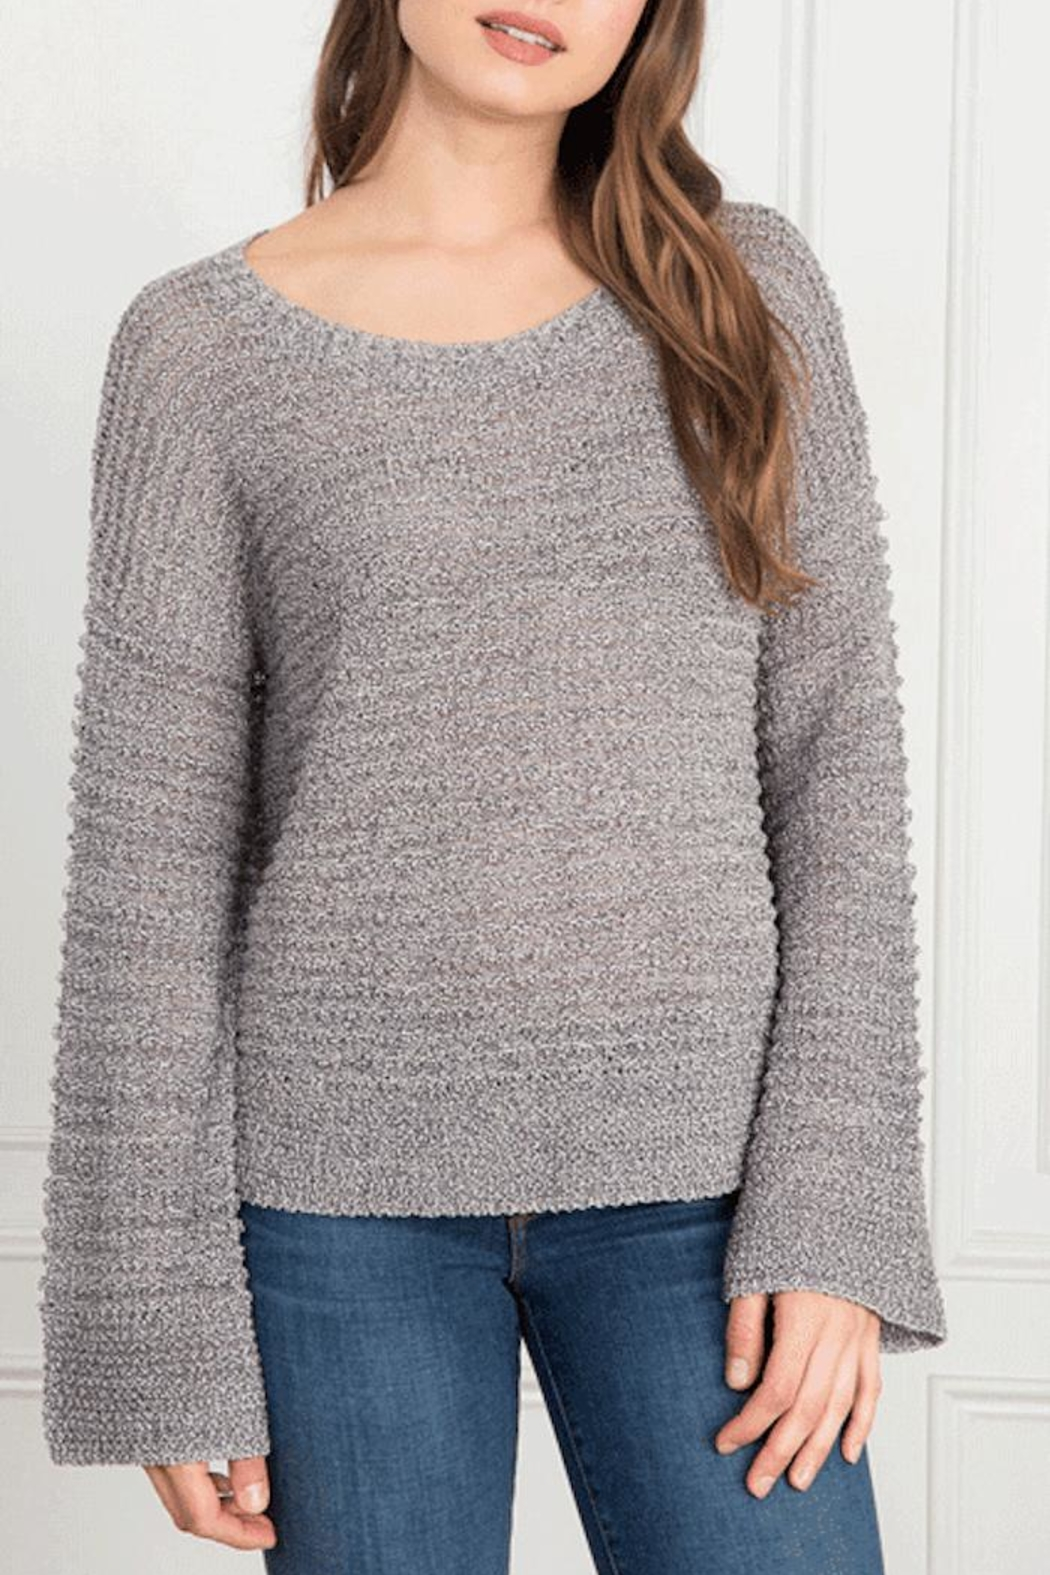 Feel the Piece by Terre Jacobs Hoover Sweater - Front Cropped Image